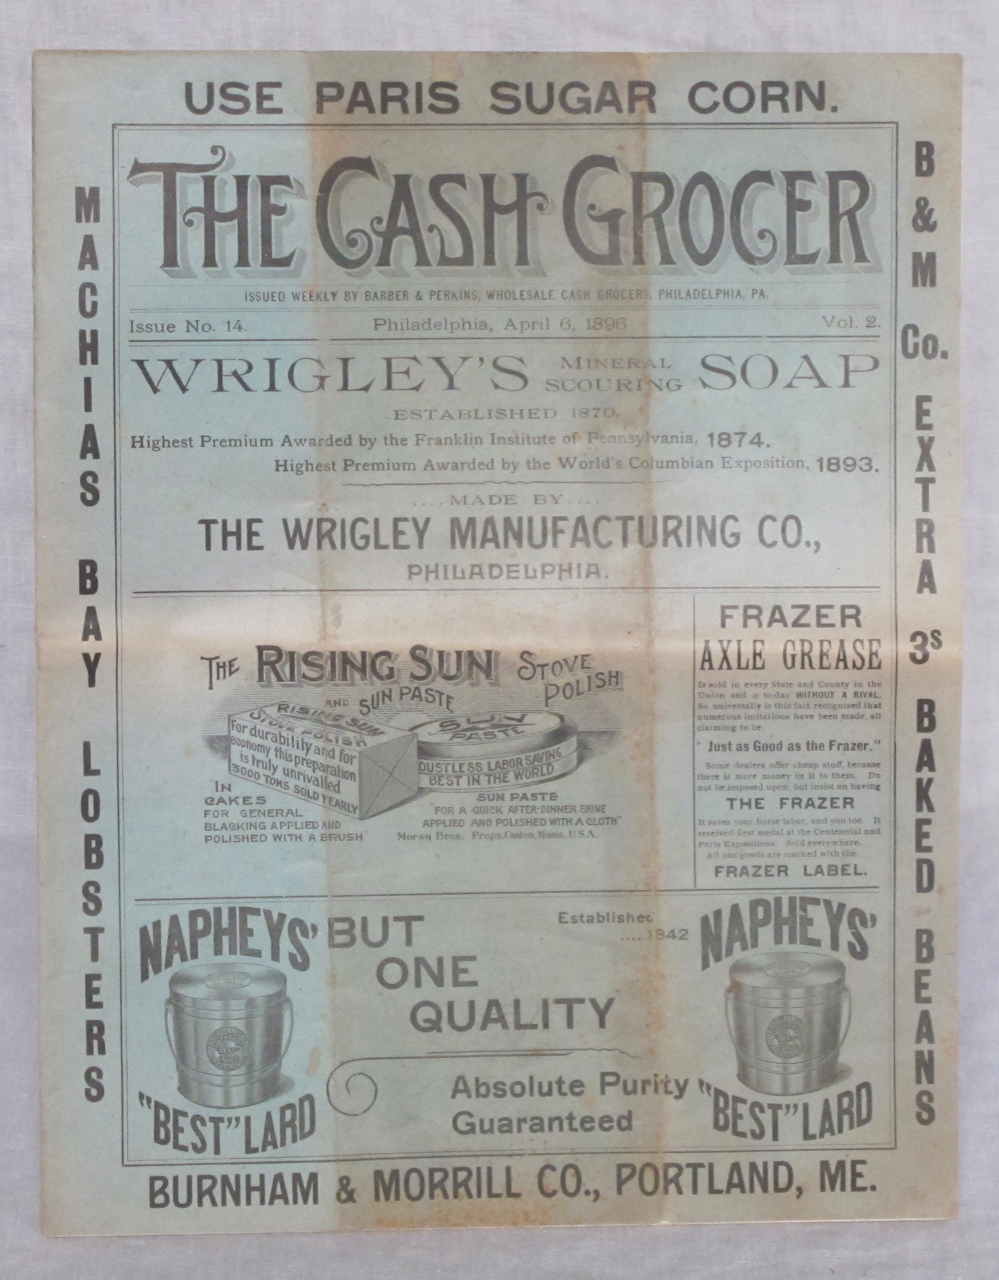 The Cash Grocer : Issued Weekly by Barber & Perkins, Wholesale Cash Grocers, Philadelphia, PA. Vol. 2, Issue No. 14, Philadelphia, April 6, 1896. Barber, Perkins.